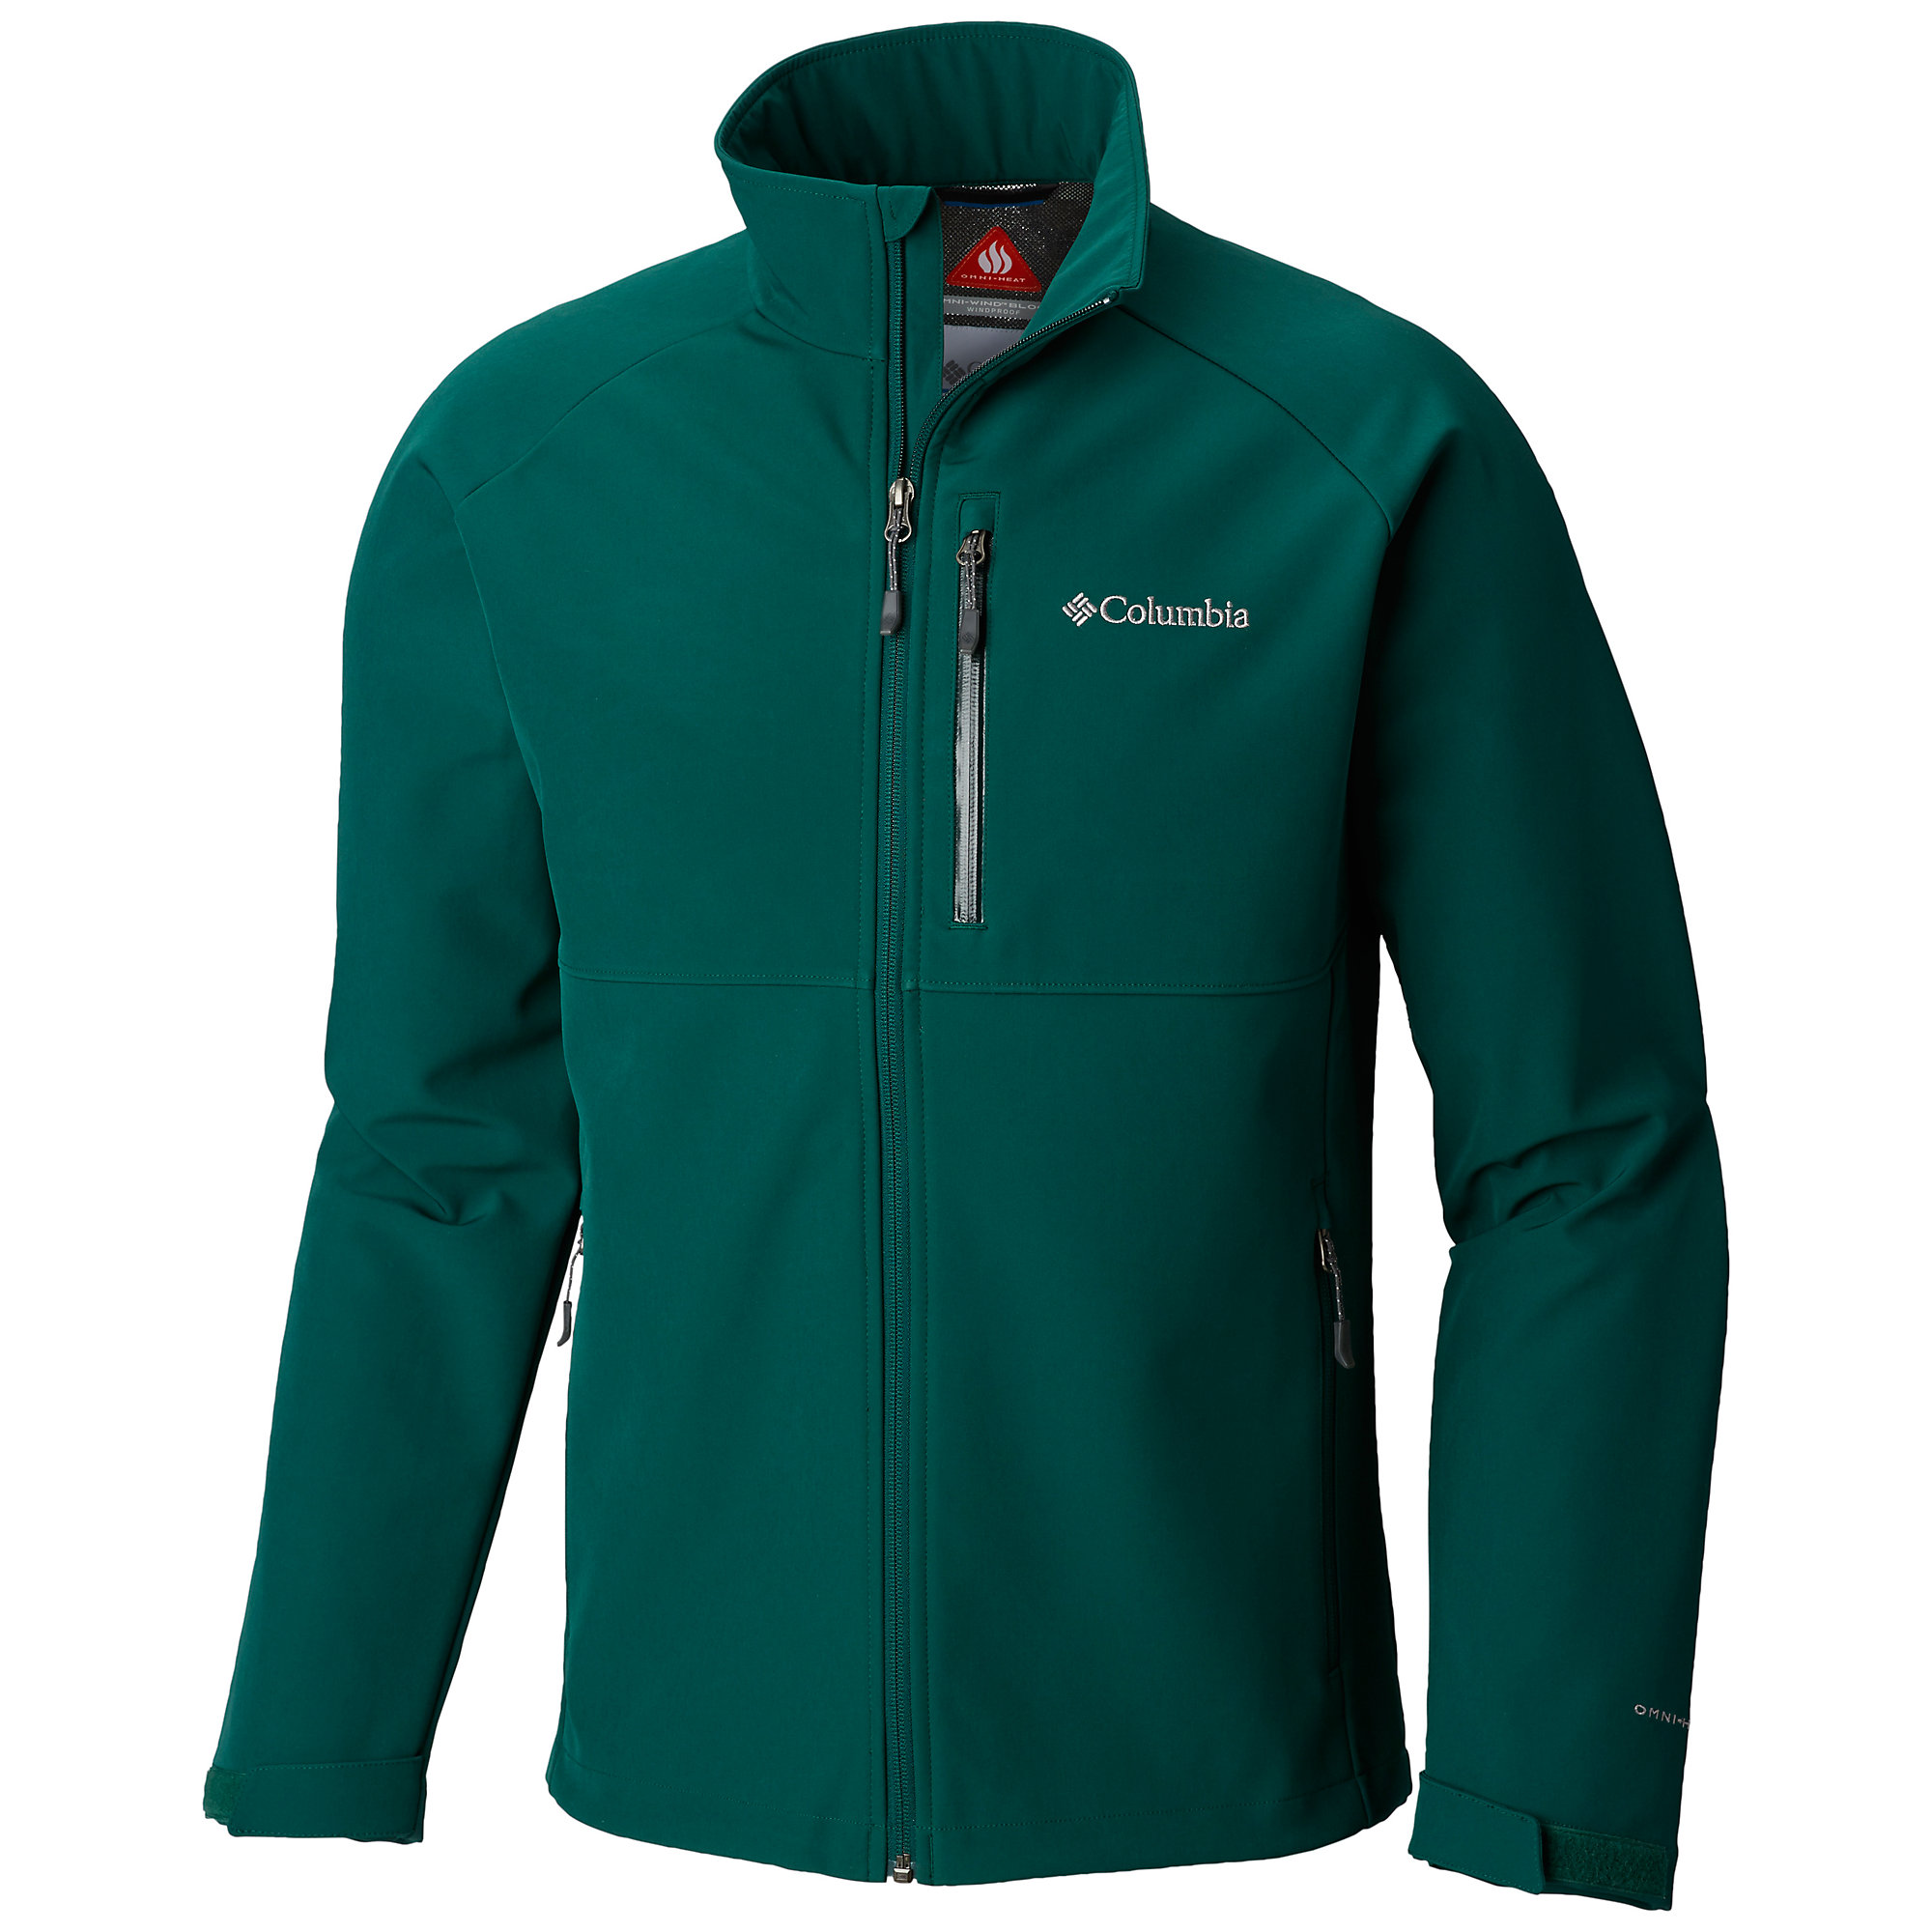 Columbia Heat Mode II Softshell Jacket